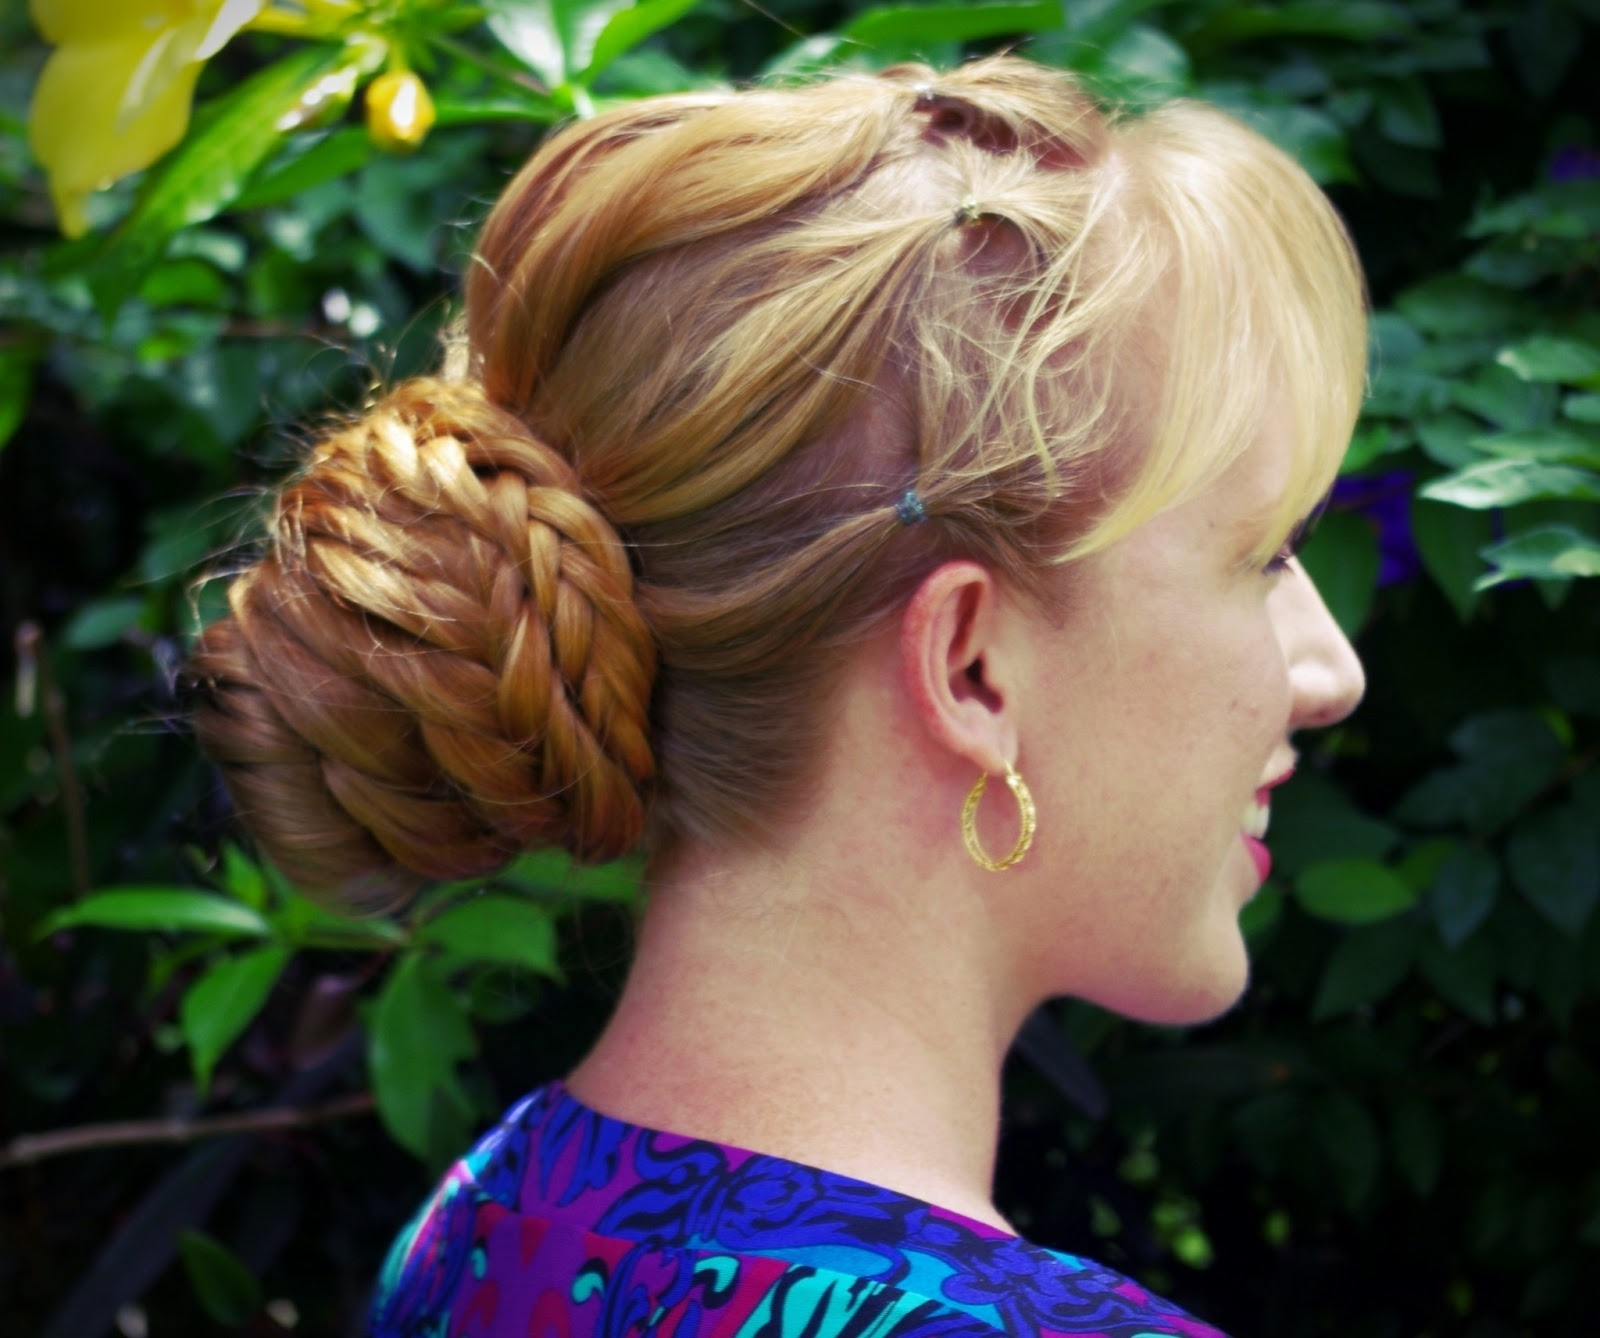 Hairstyles Trend: Loose Fishtail Bun With Ponytail Accents Regarding Recent Pony Hairstyles With Accent Braids (View 12 of 20)